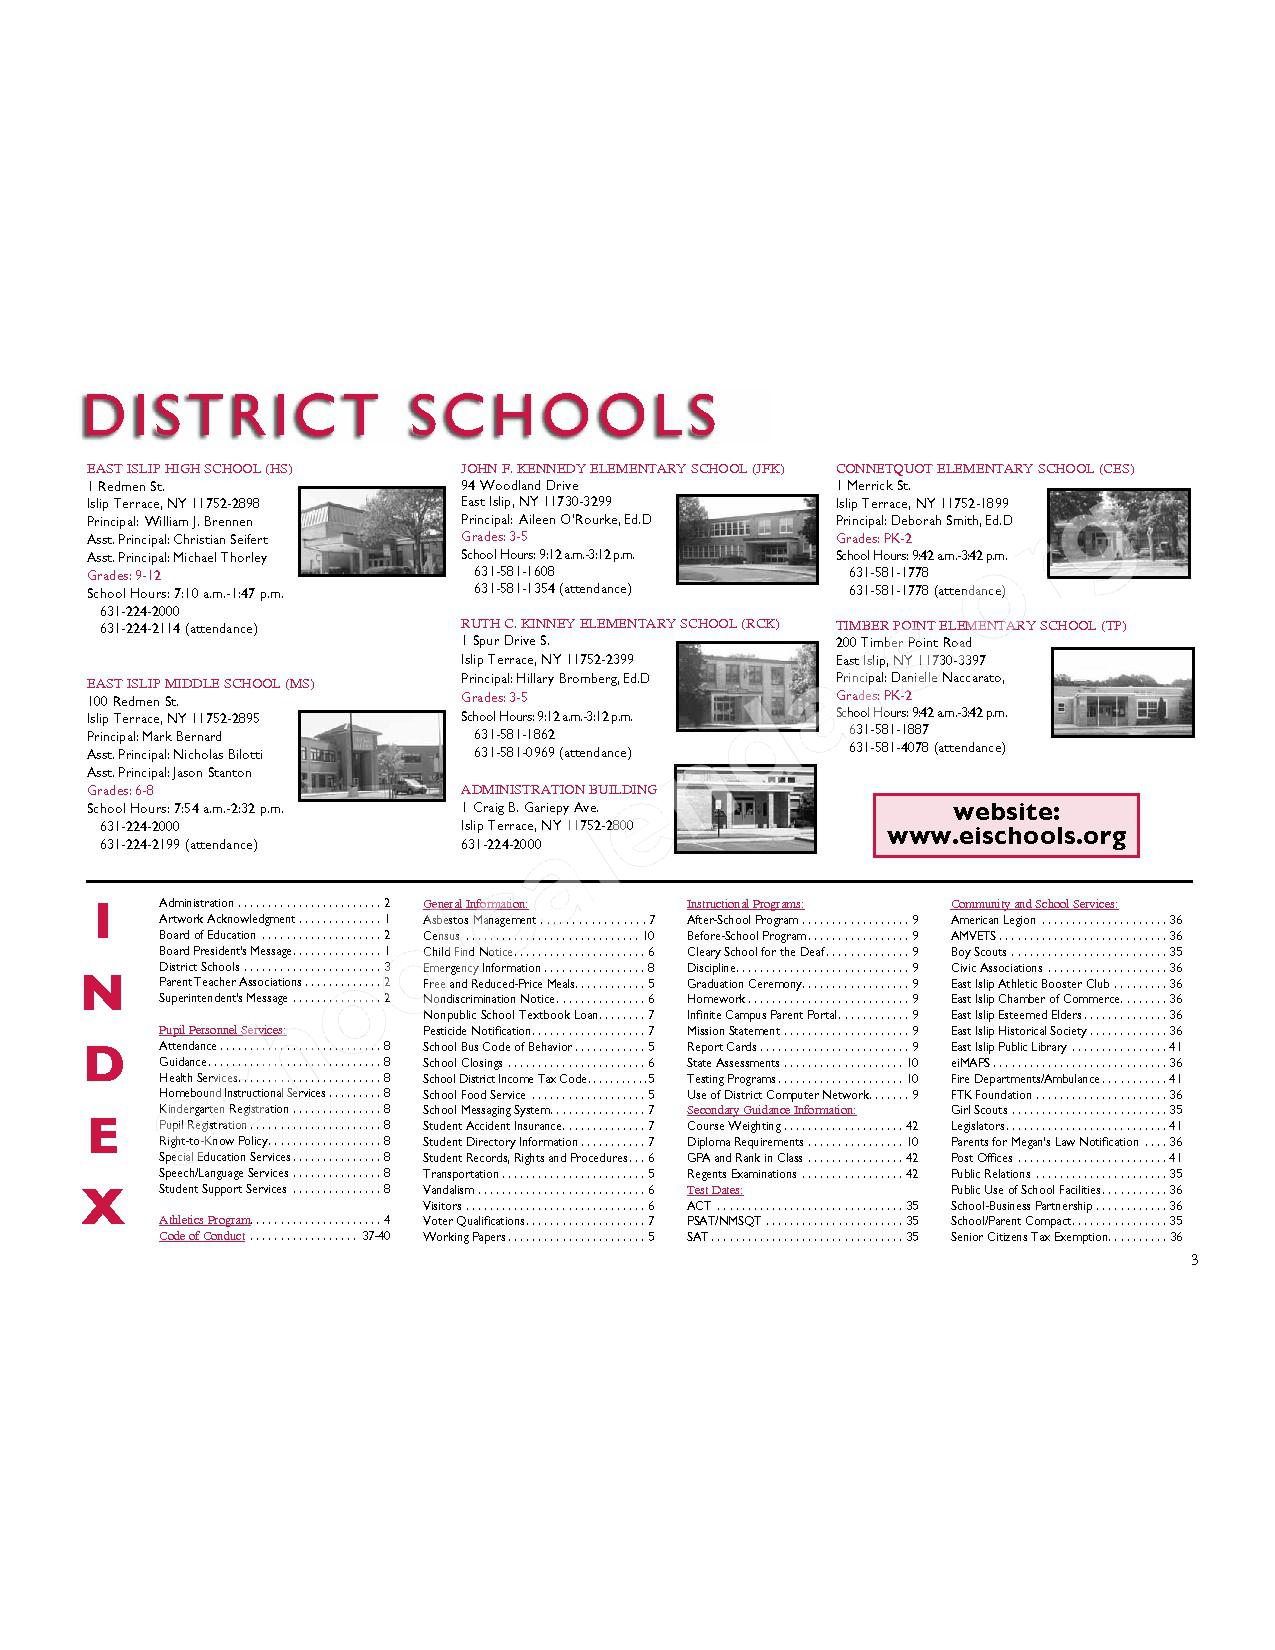 2016 - 2017 District Calendar | East Islip Union Free School throughout East Islip School District Calendar